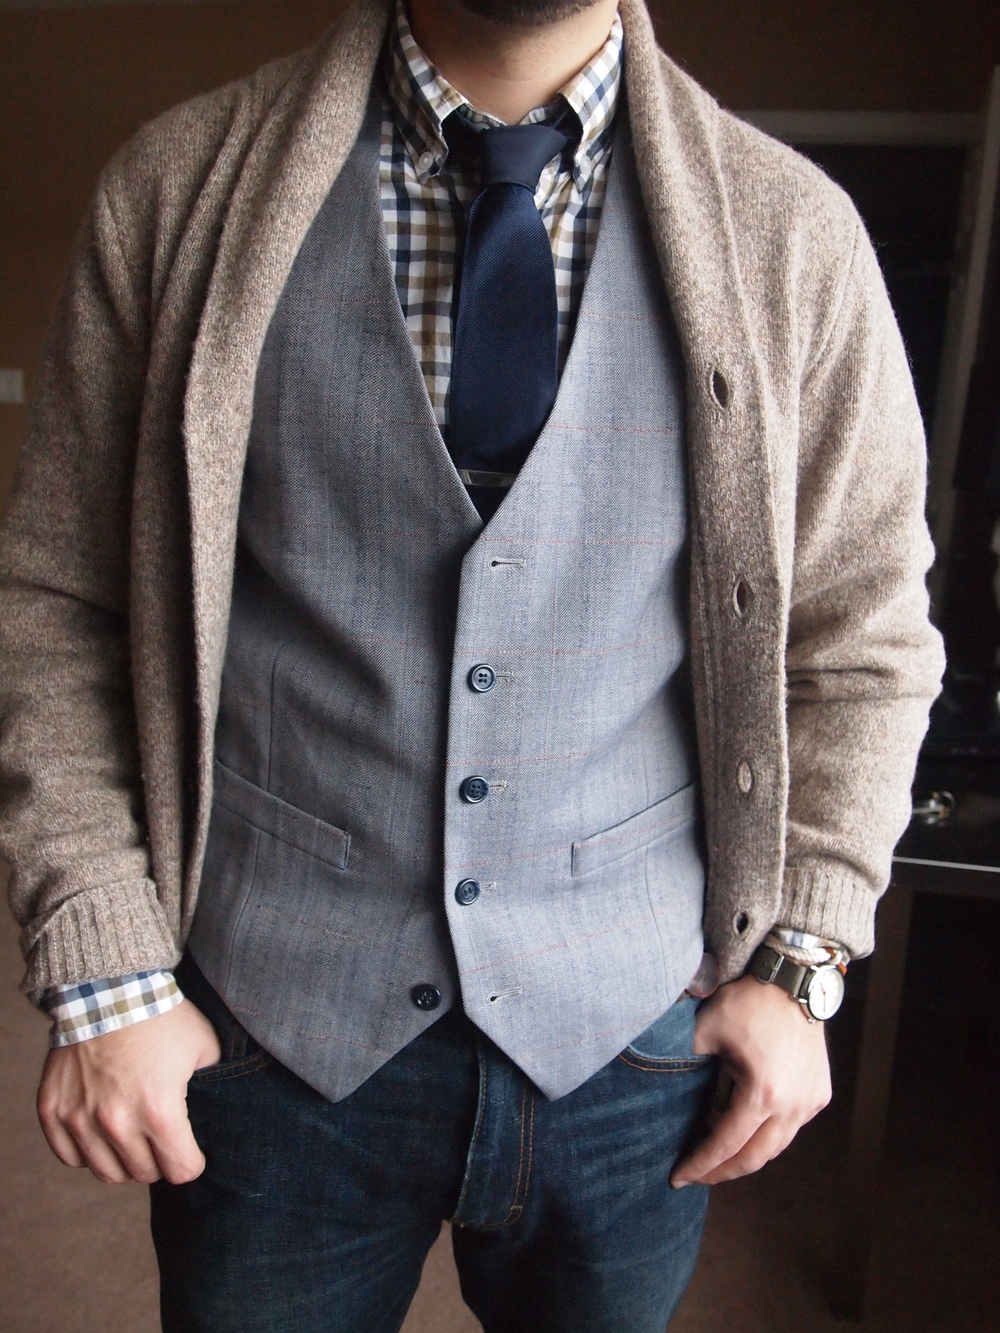 (from: dressedtoill.com )